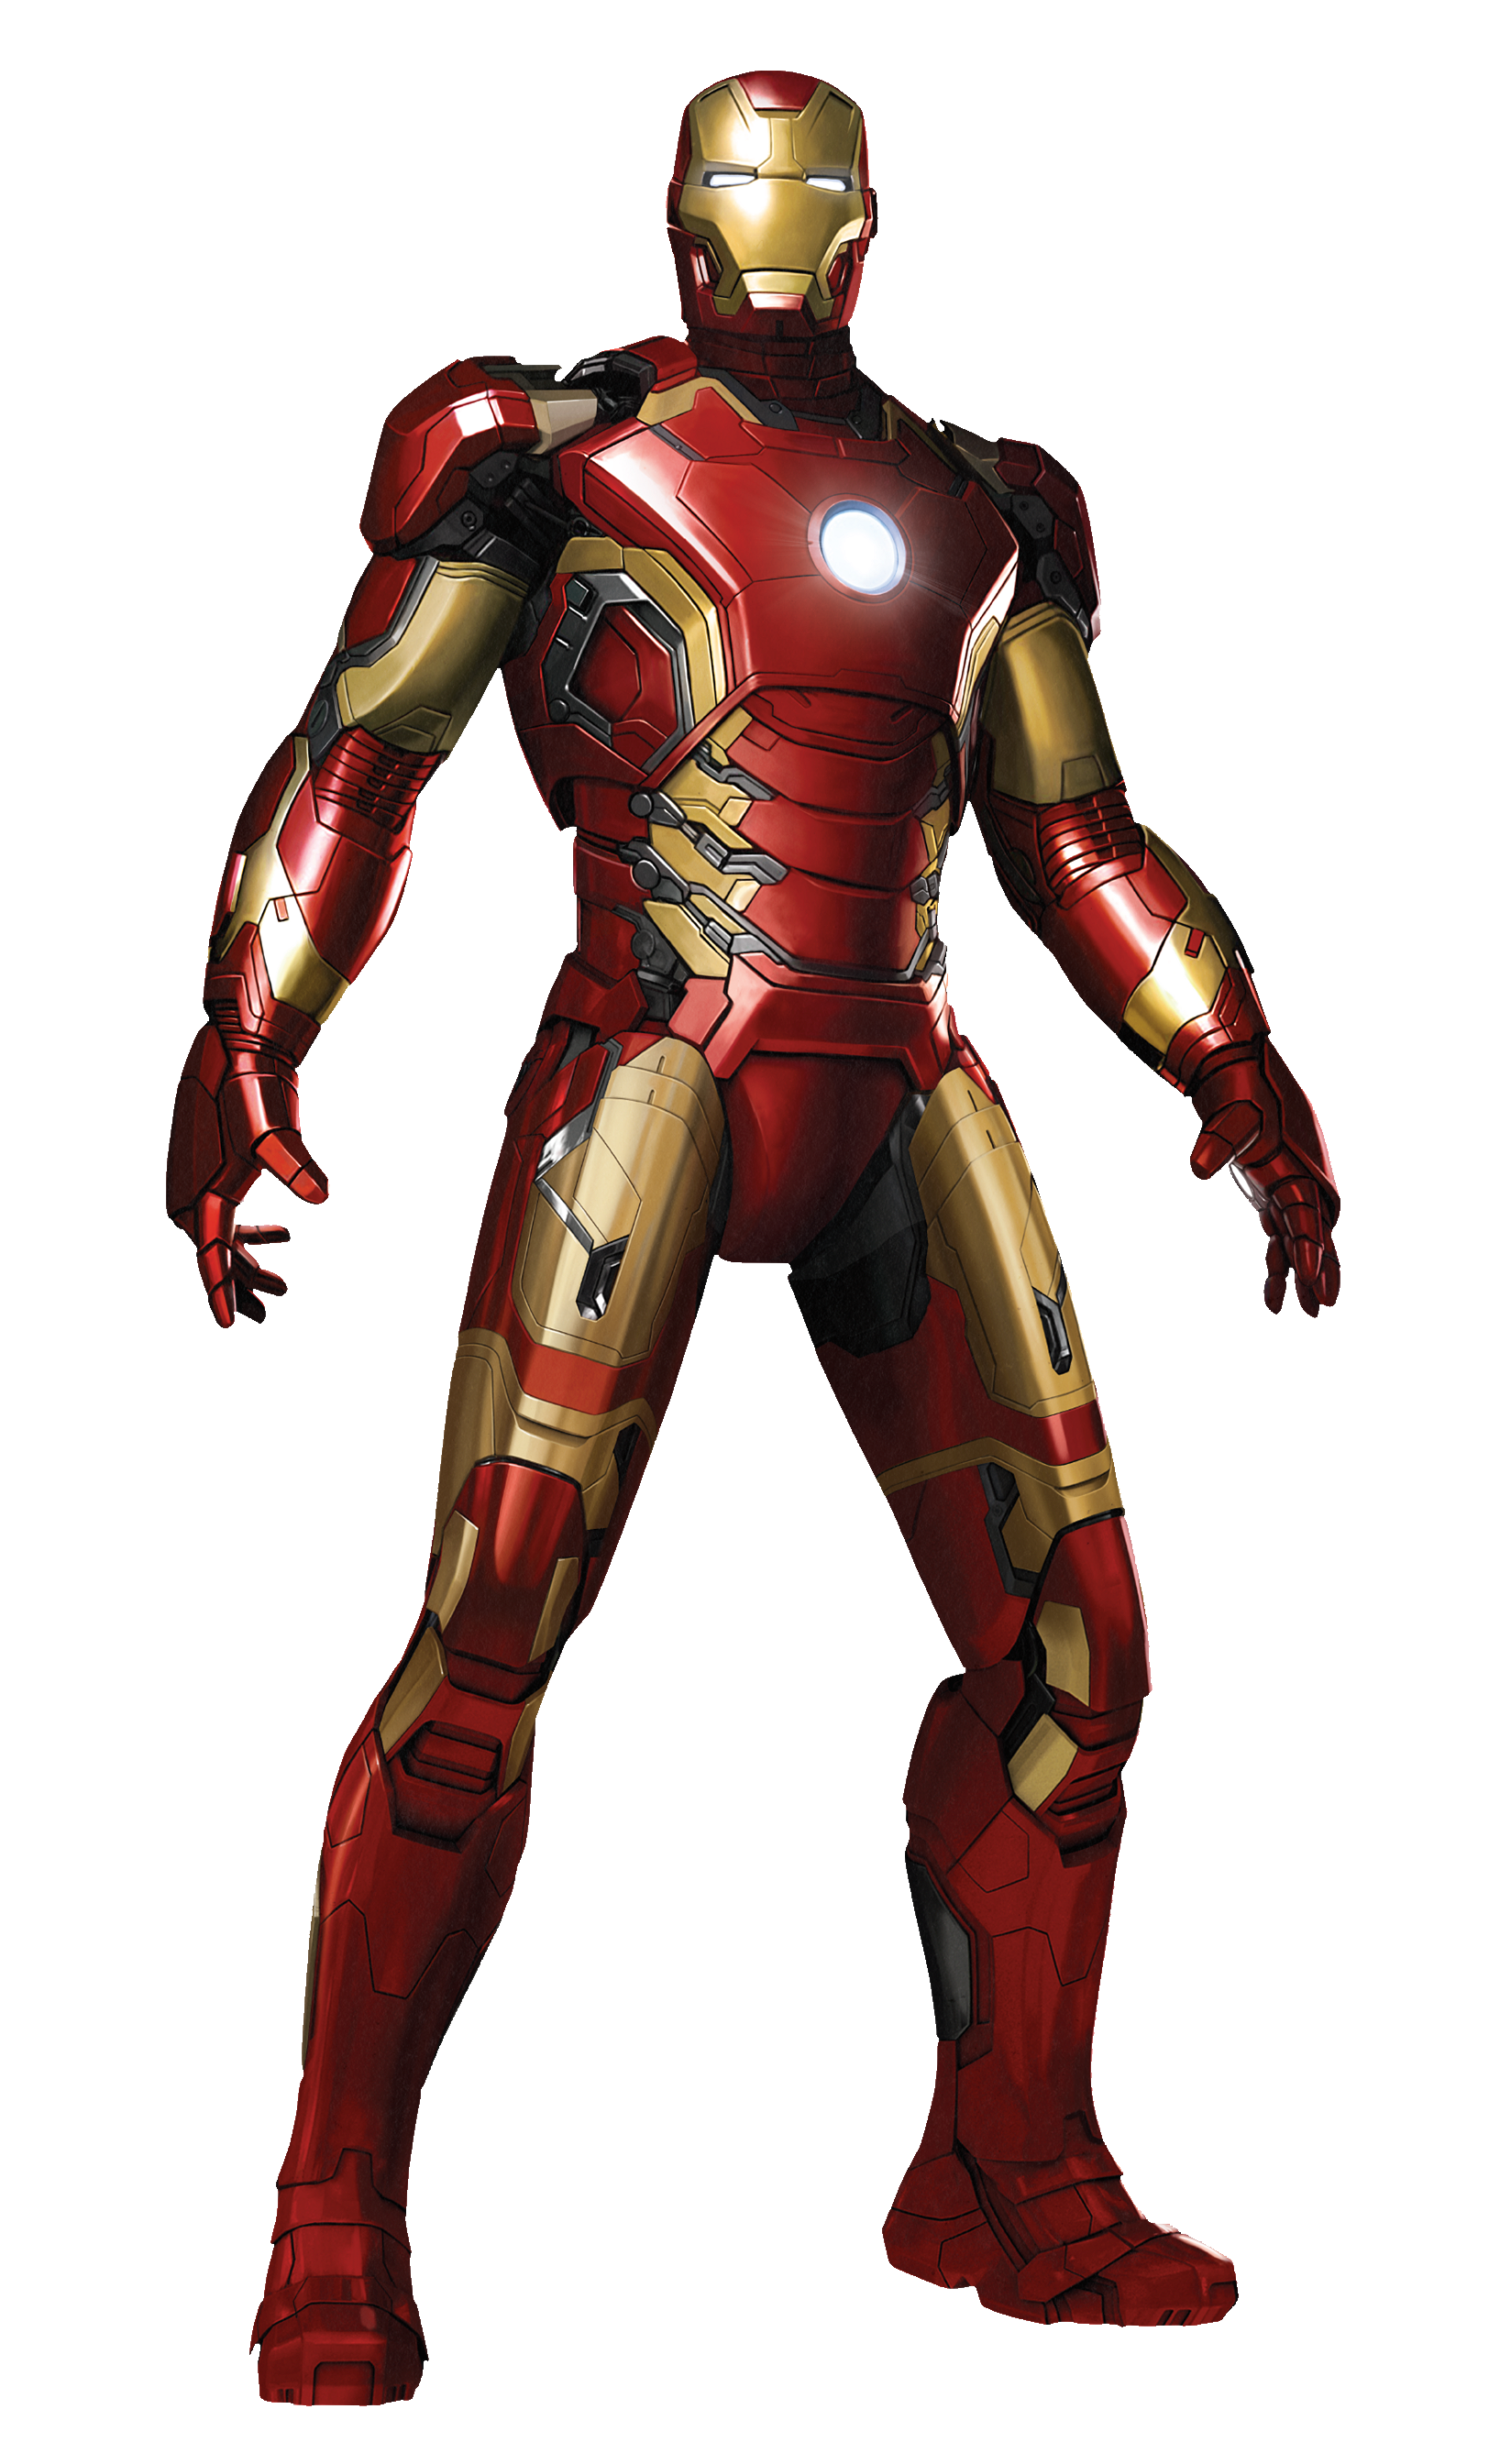 Iron Man armor Marvel Movies FANDOM powered by Wikia 1648x2688